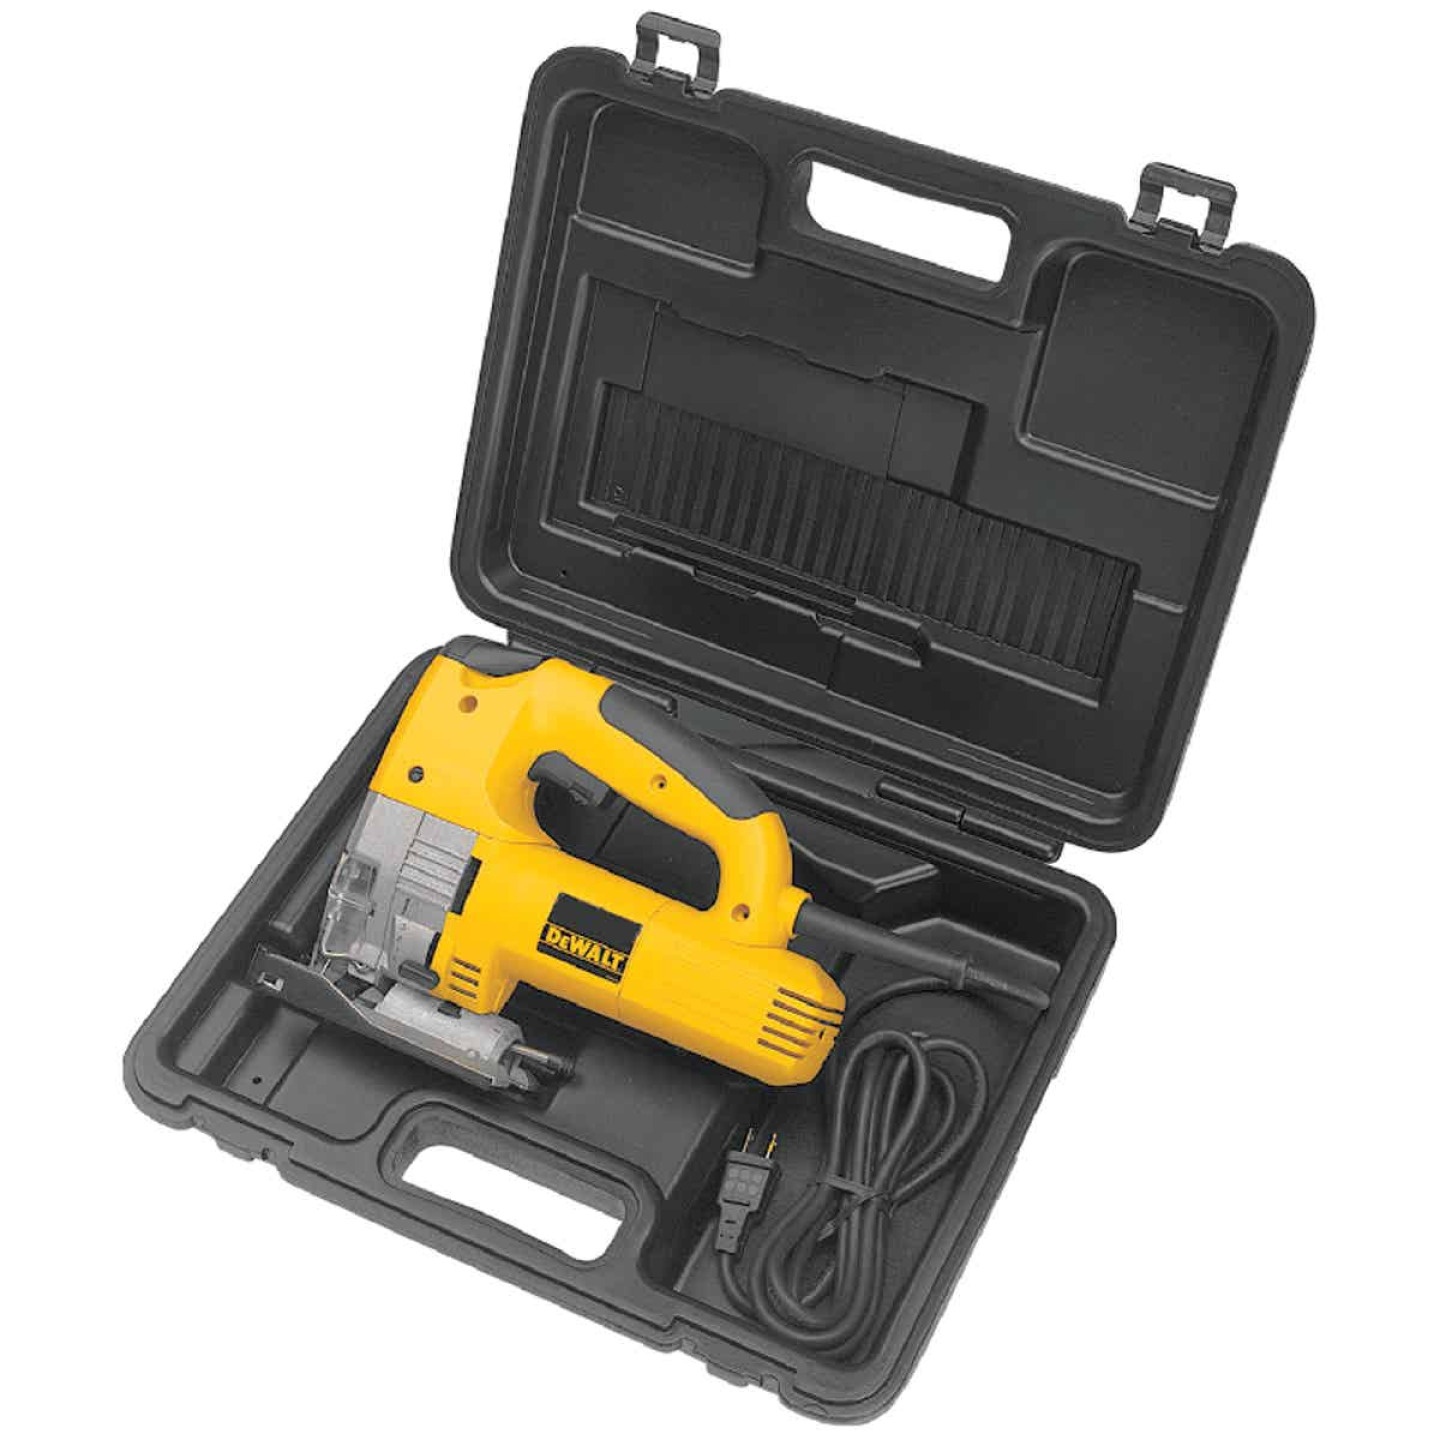 DeWalt 6.5A 4-Position 500-3100 SPM Jig Saw Kit Image 9